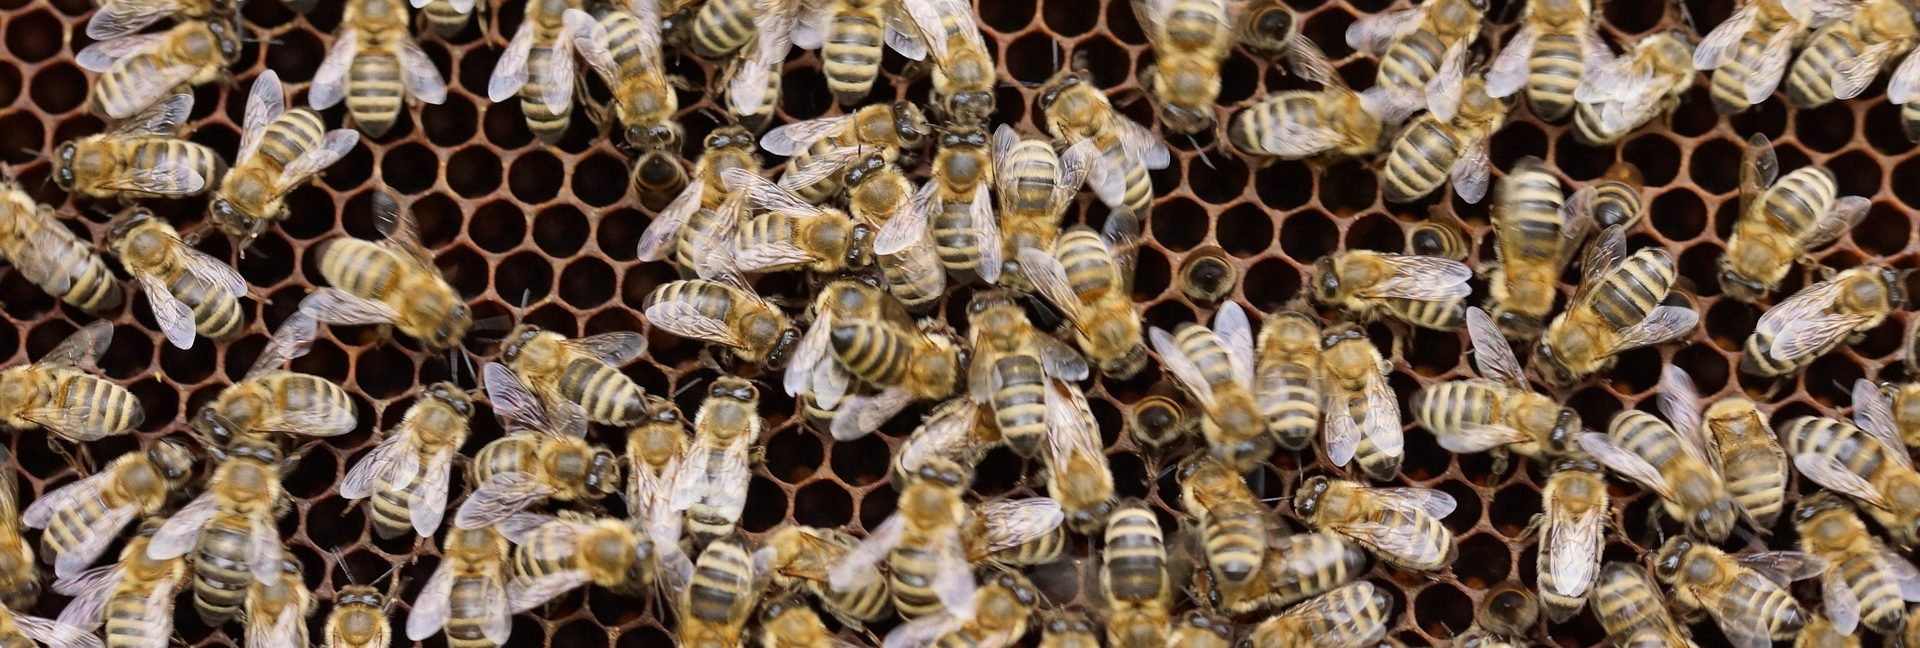 bees-1143385_1920